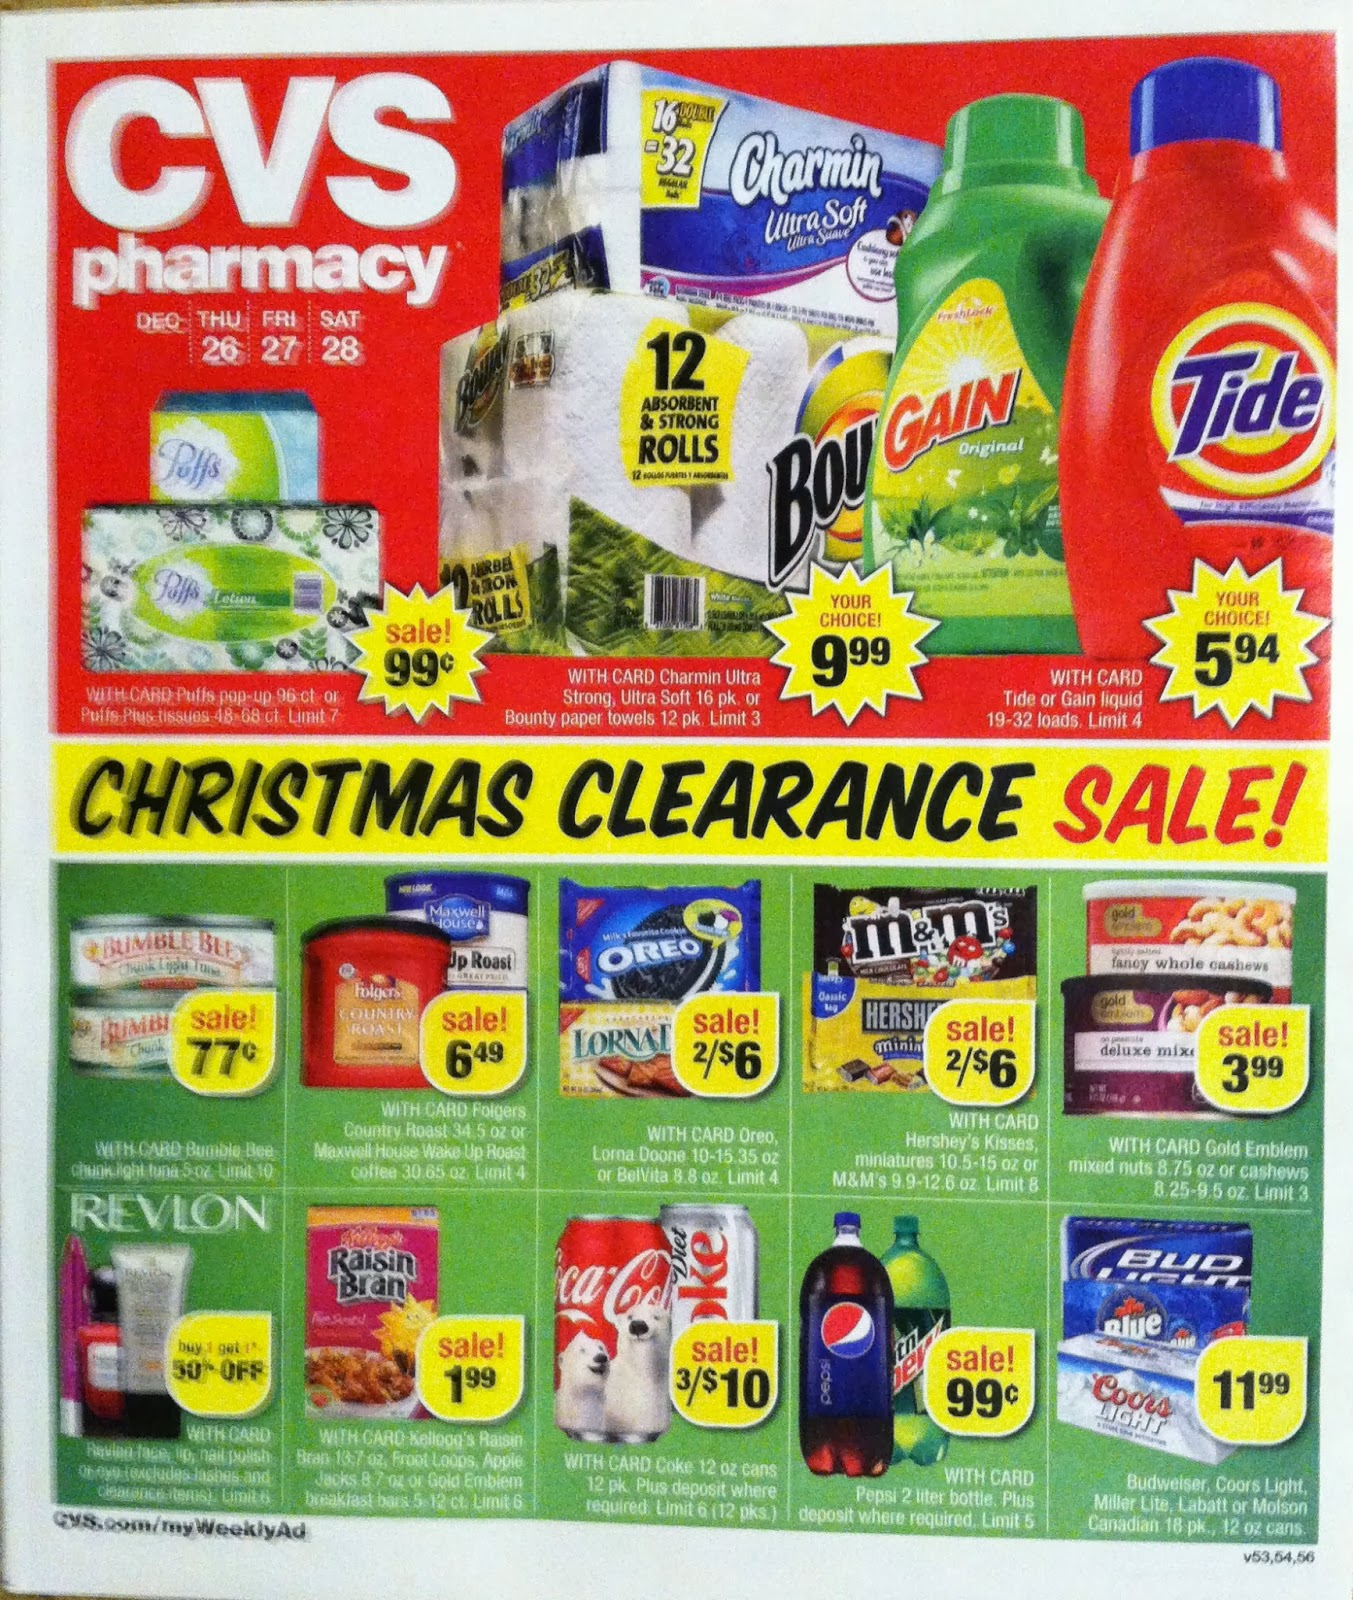 cvs ad scan preview for the post christmas cvs ad dec 26 28 - Cvs Christmas Clearance